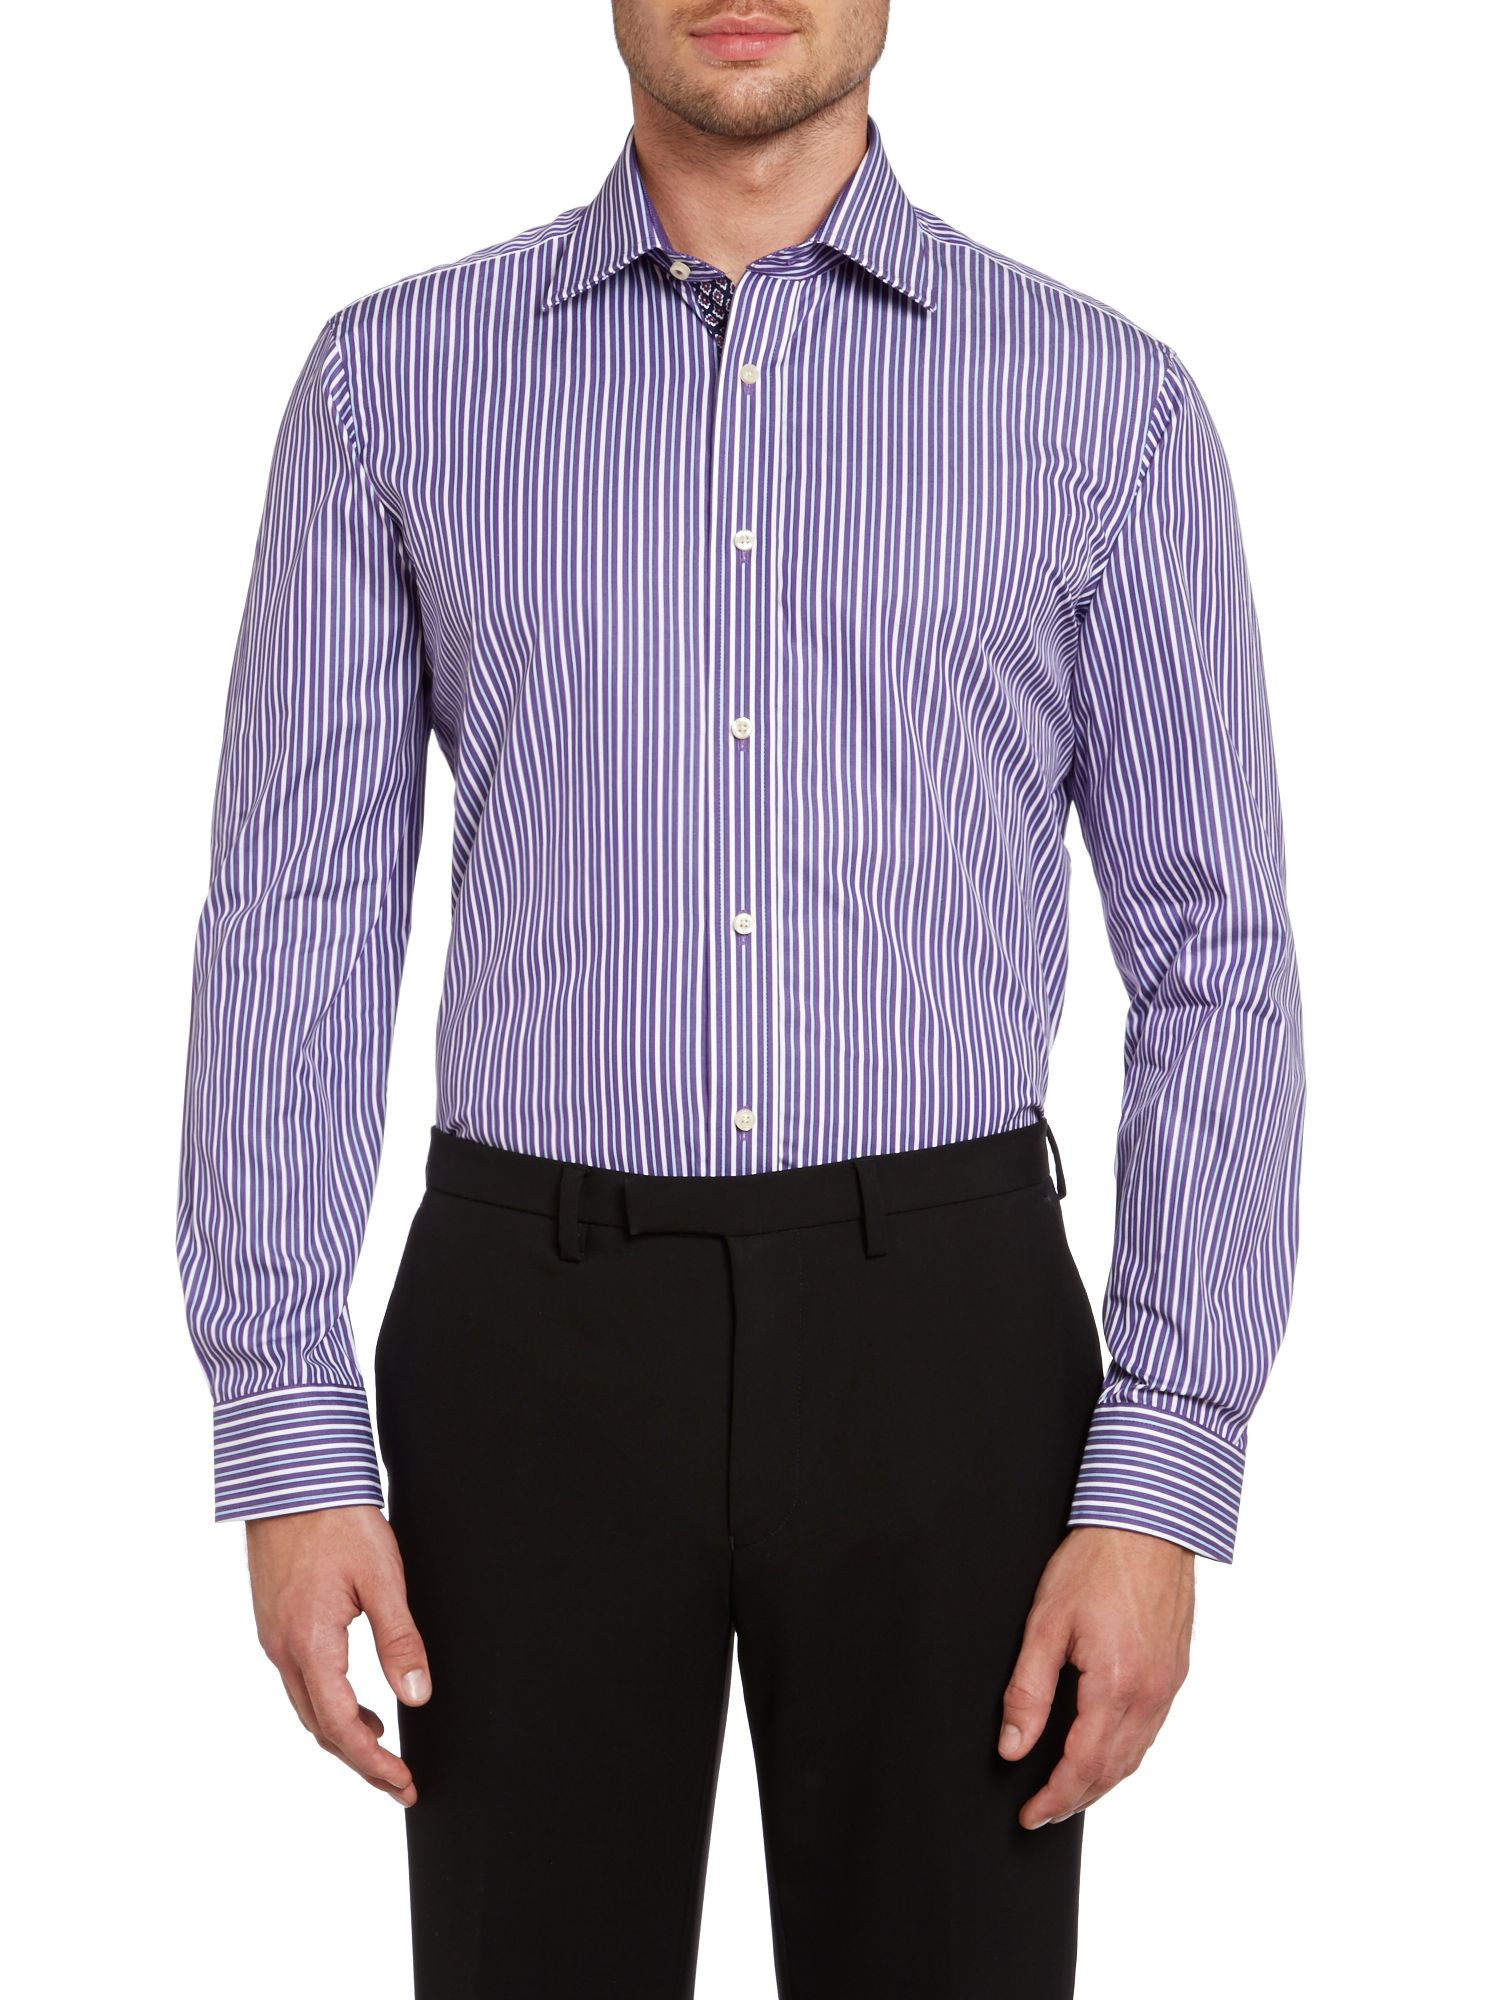 Walcot regular fit stripe shirt